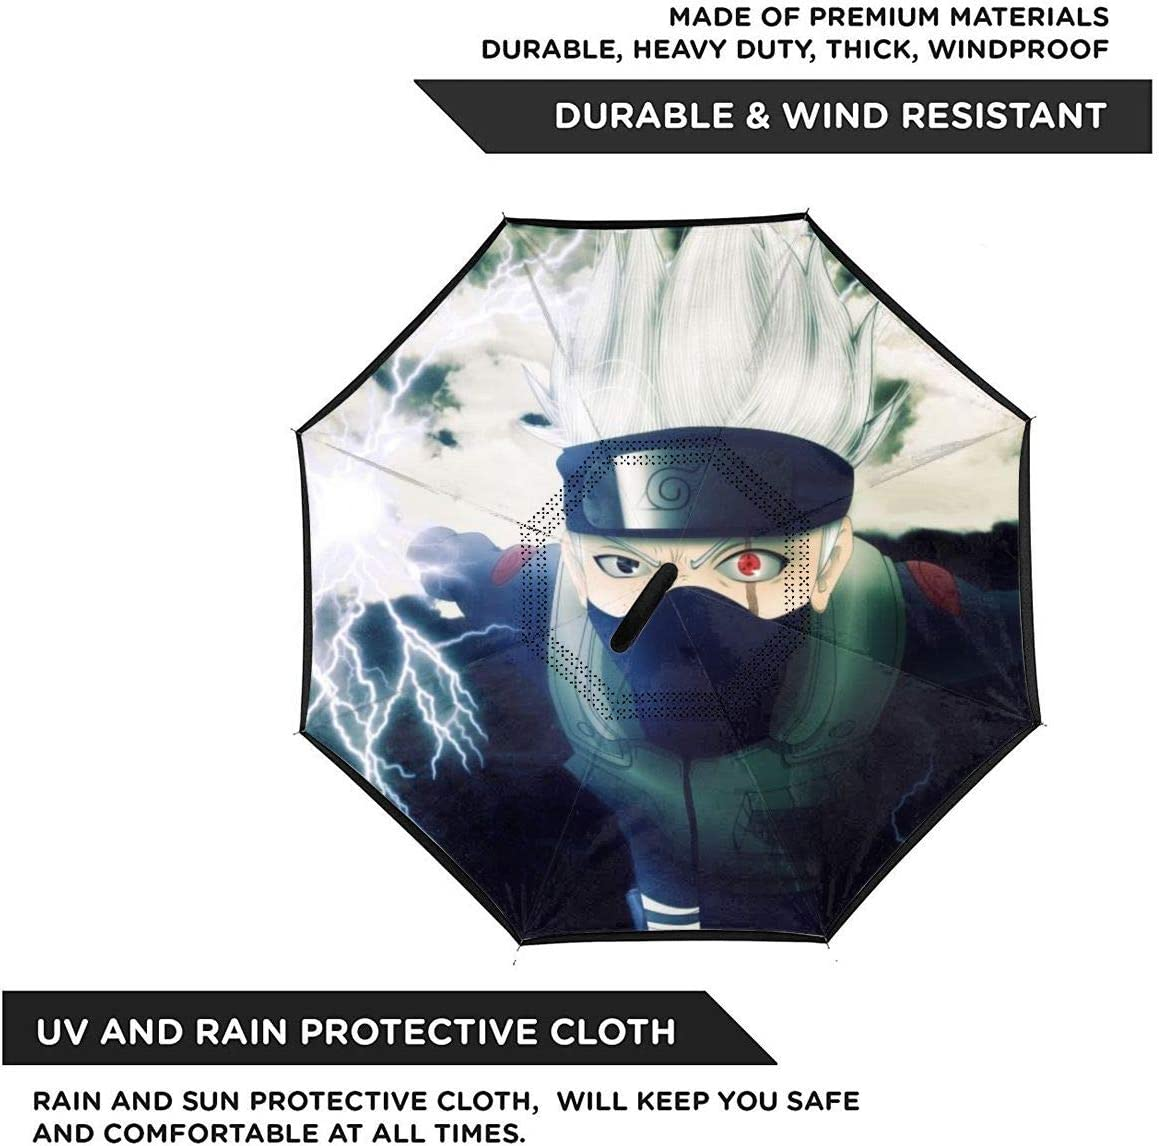 Windproof And Rainproof Double Folding Inverted Umbrella With C-Shaped Handle UV Protection Inverted Folding Umbrellas Naruto Hatake Kakashi Anime Car Reverse Umbrella